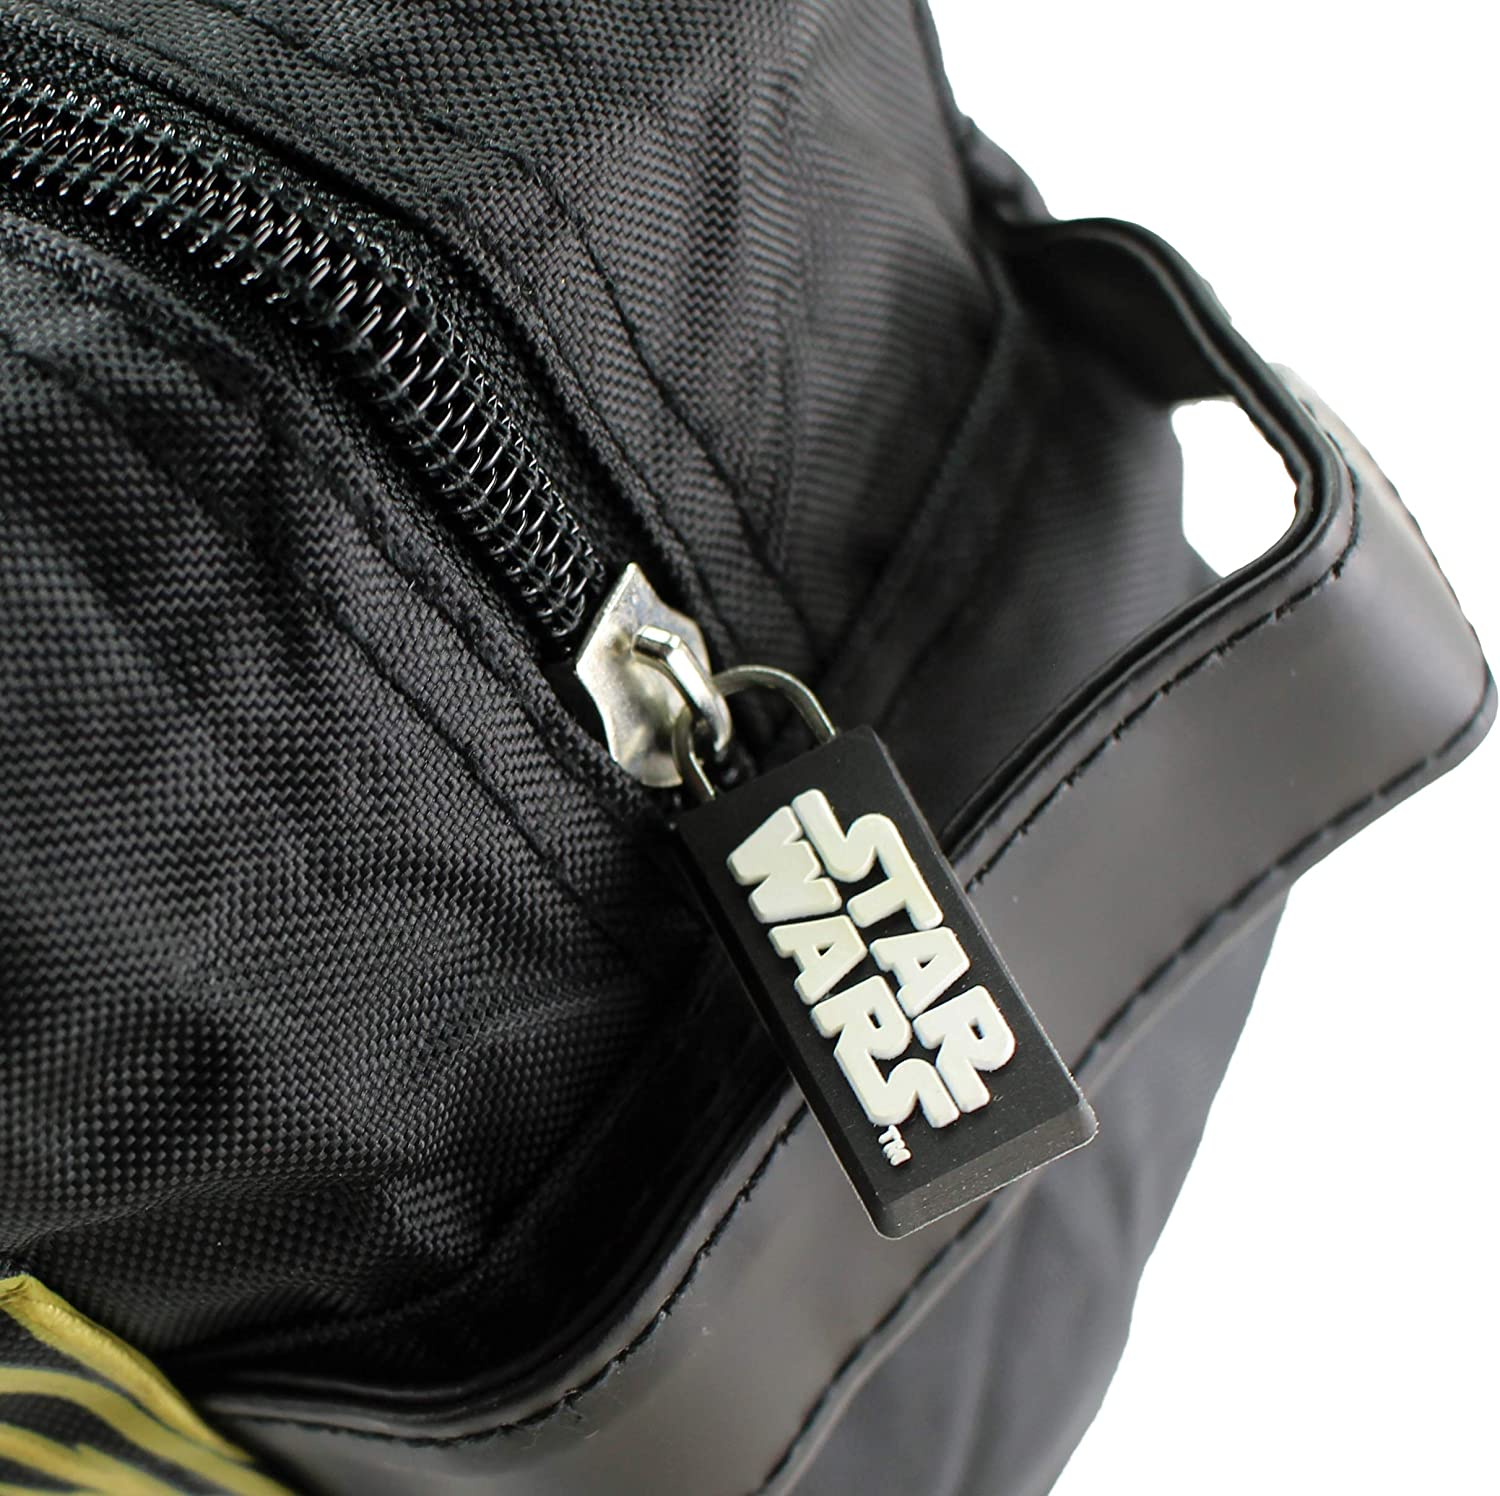 Official Star Wars Black /& Blue Chewbacca Wash Bag Toiletry Travel Bag